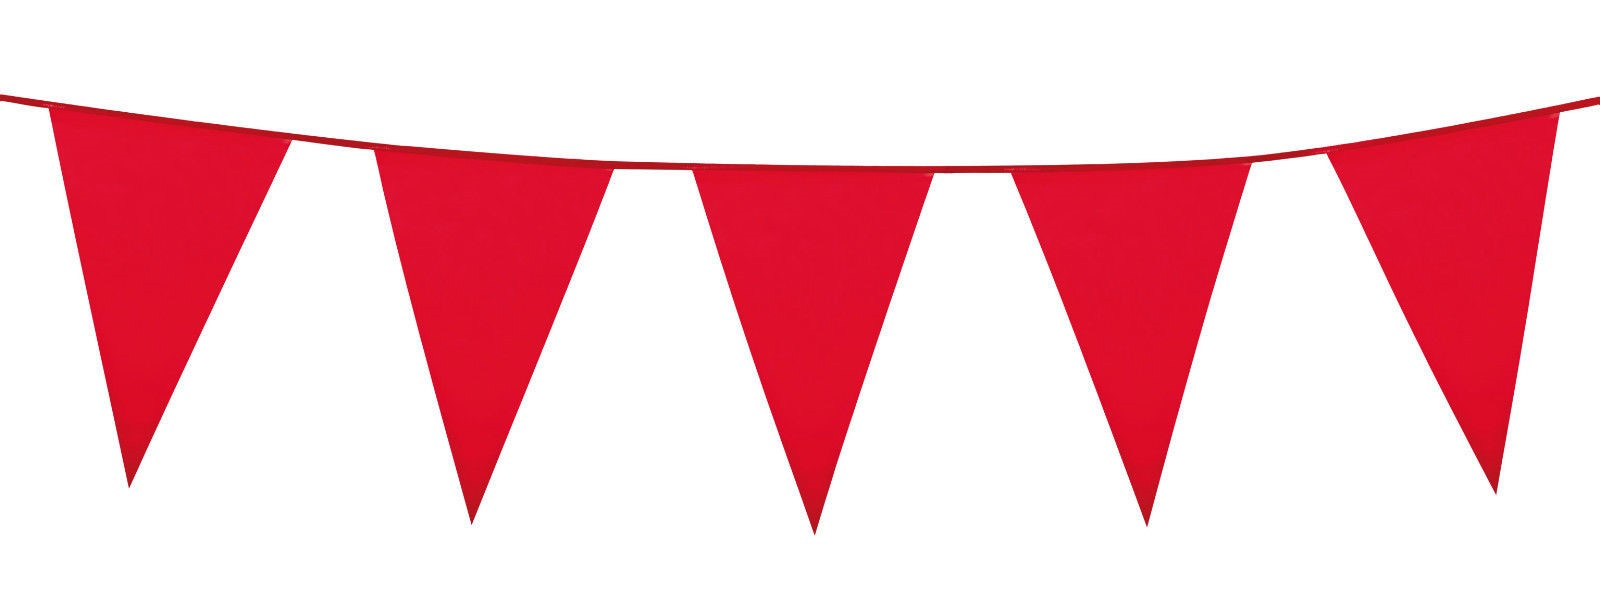 1600x615 Bunting Clipart Party Bunting